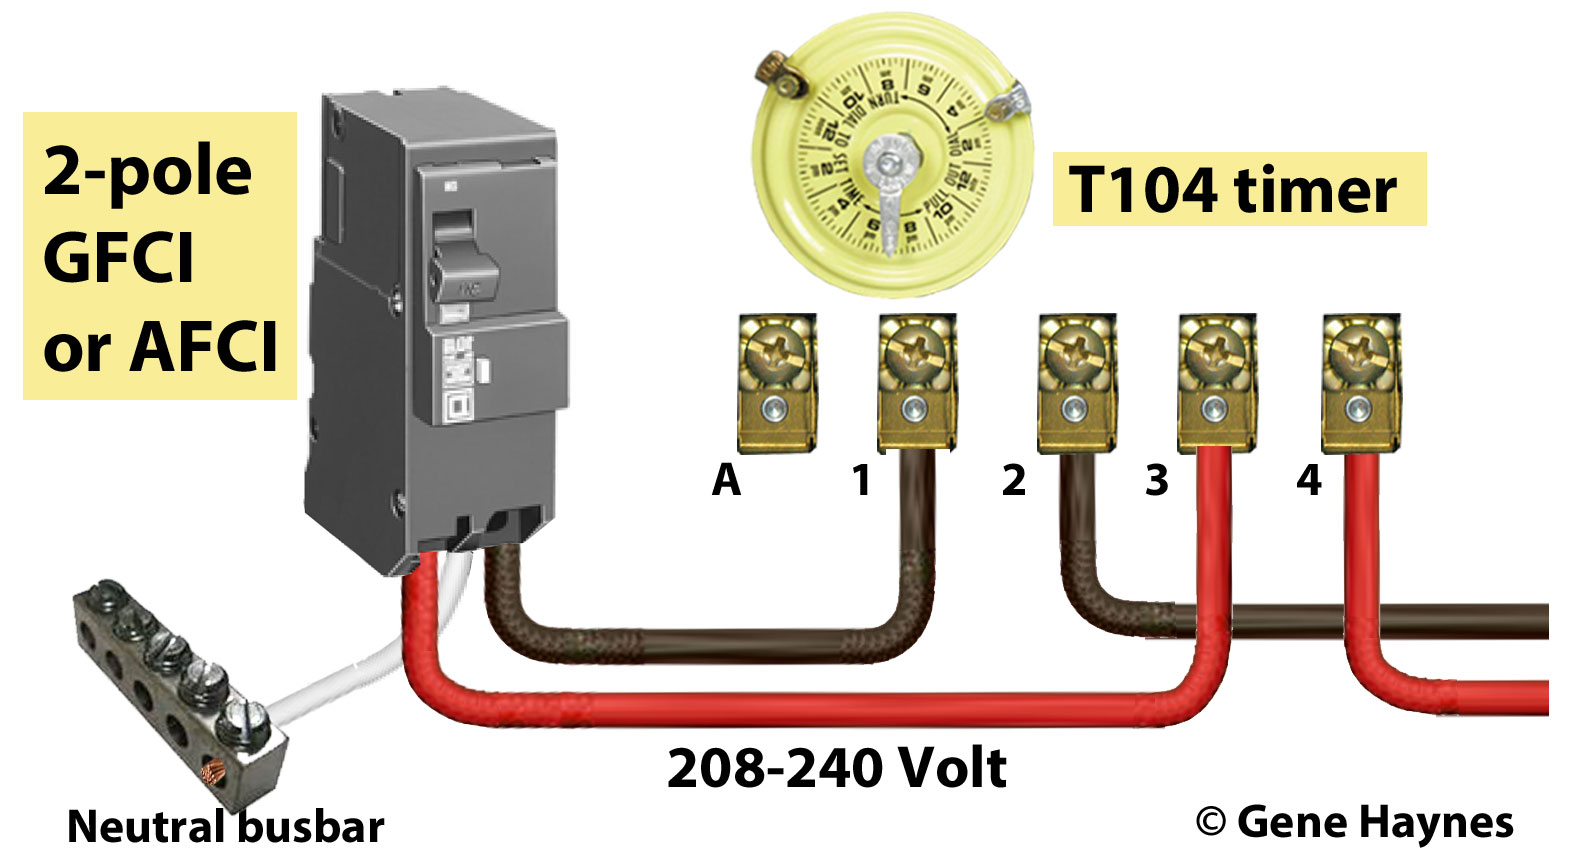 hight resolution of pool gfci breaker wiring diagram wiring diagram blog pool gfci breaker wiring diagram